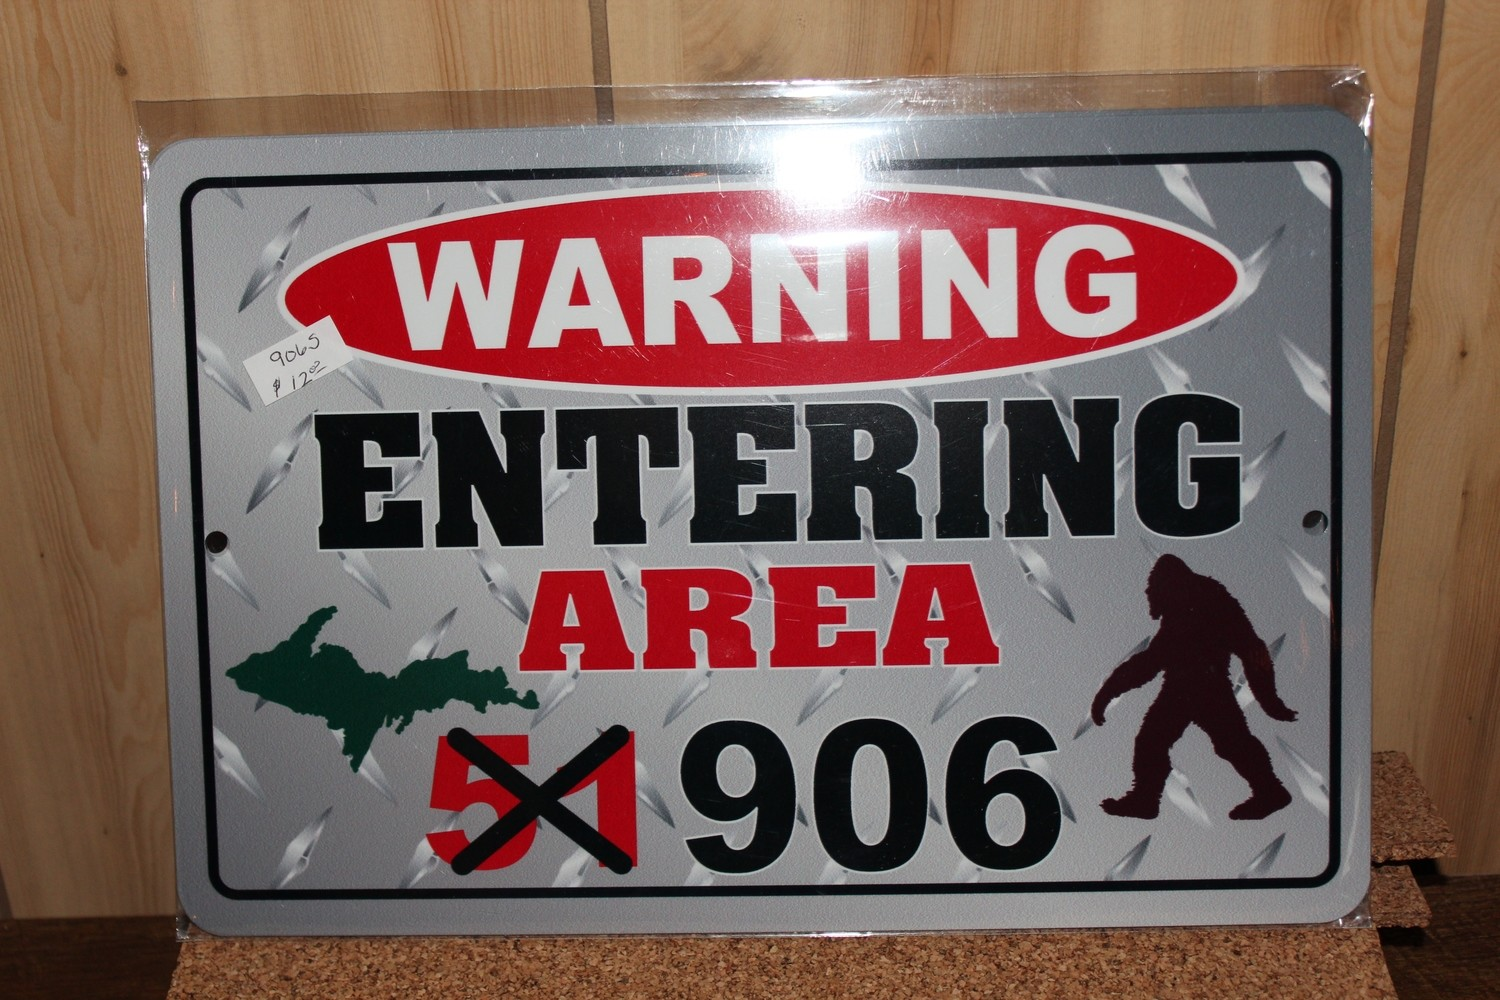 Warning Entering Area (51) 906 with Bigfoot Sign